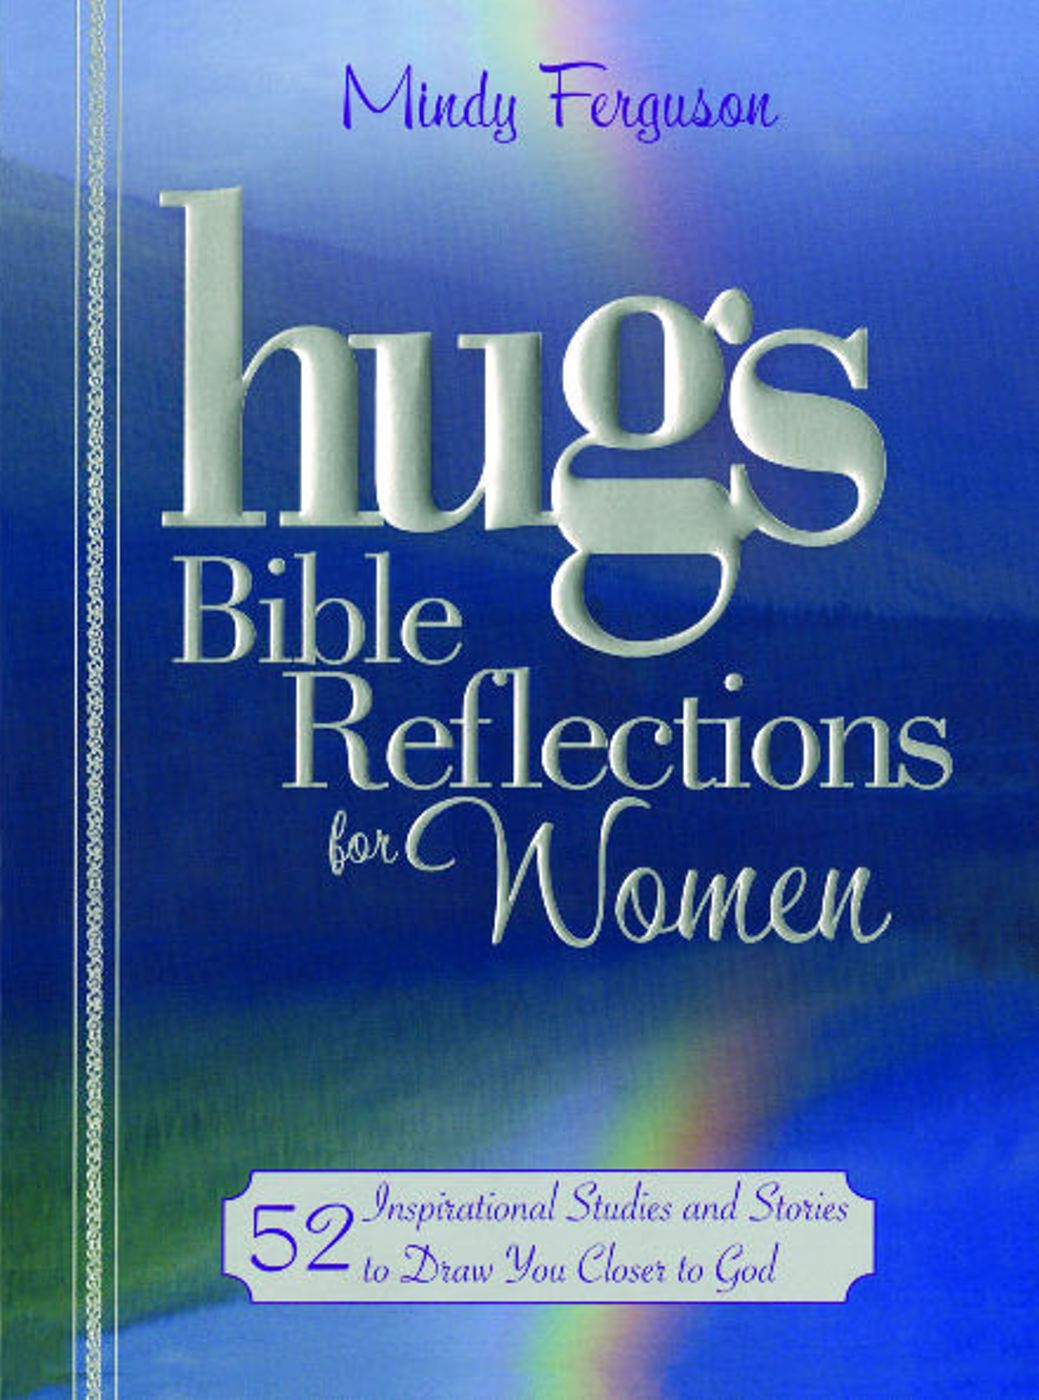 Hugs Bible Reflections for Women By: Mindy Ferguson